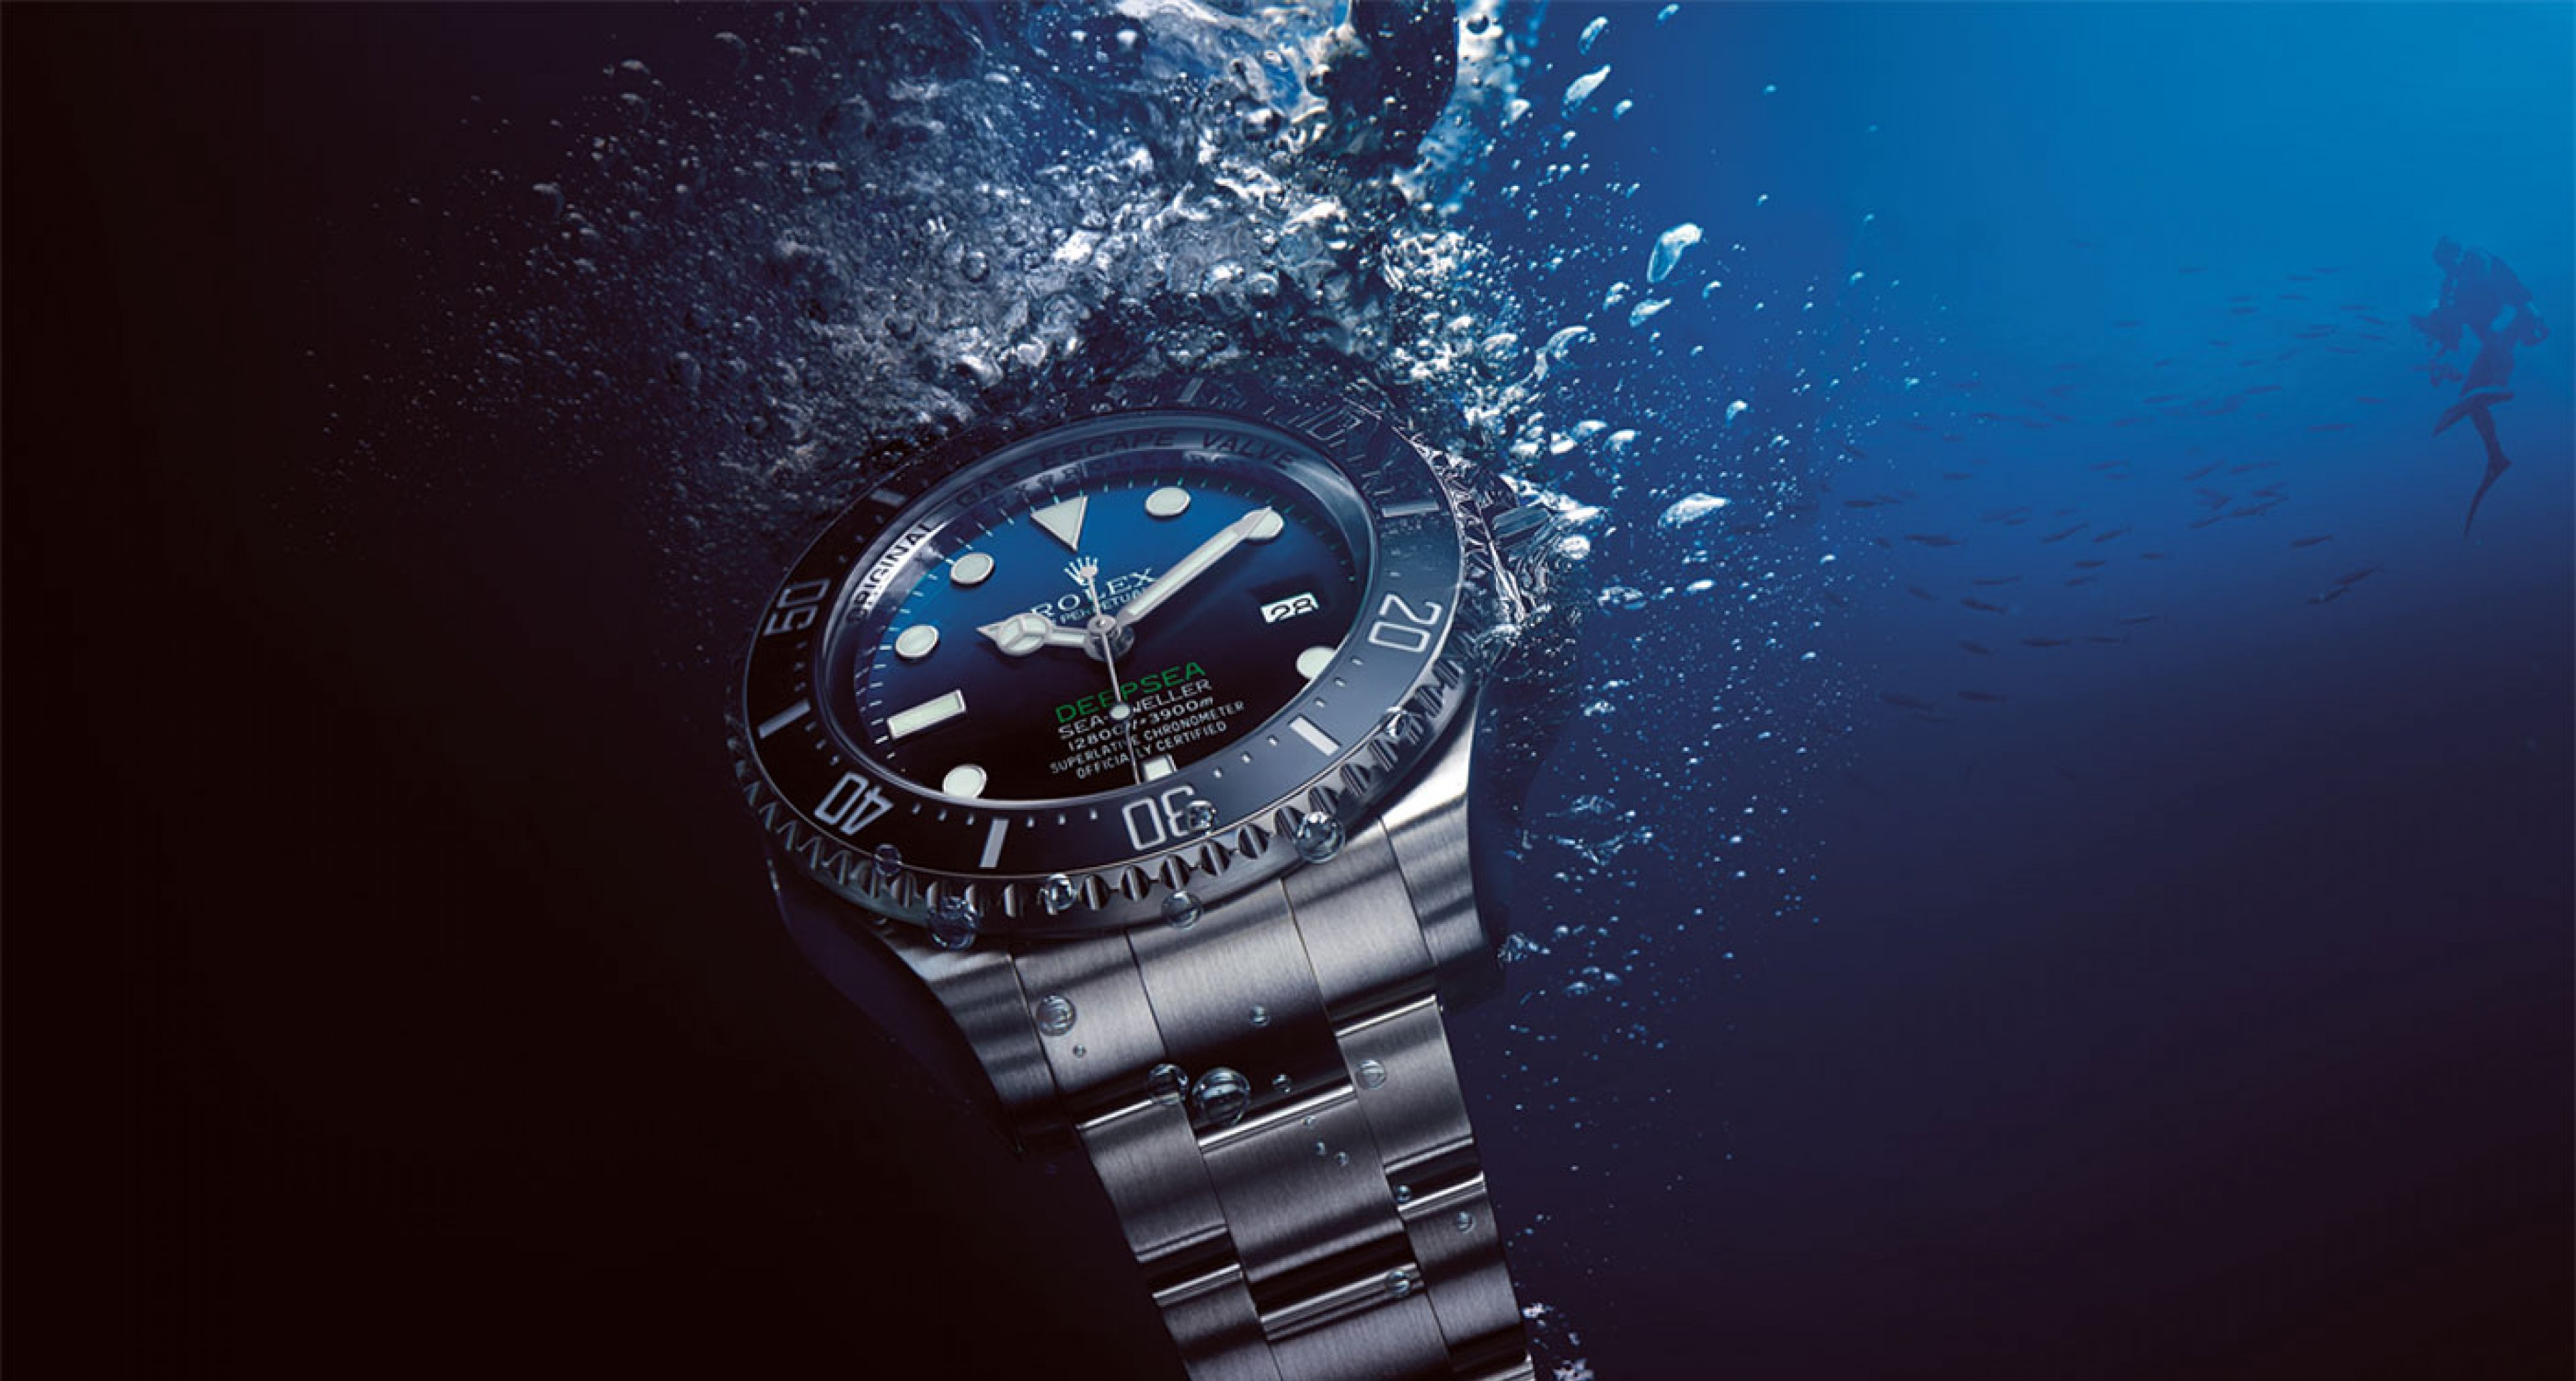 The 2014 Rolex Deep Sea with the allnew D-Blue dial